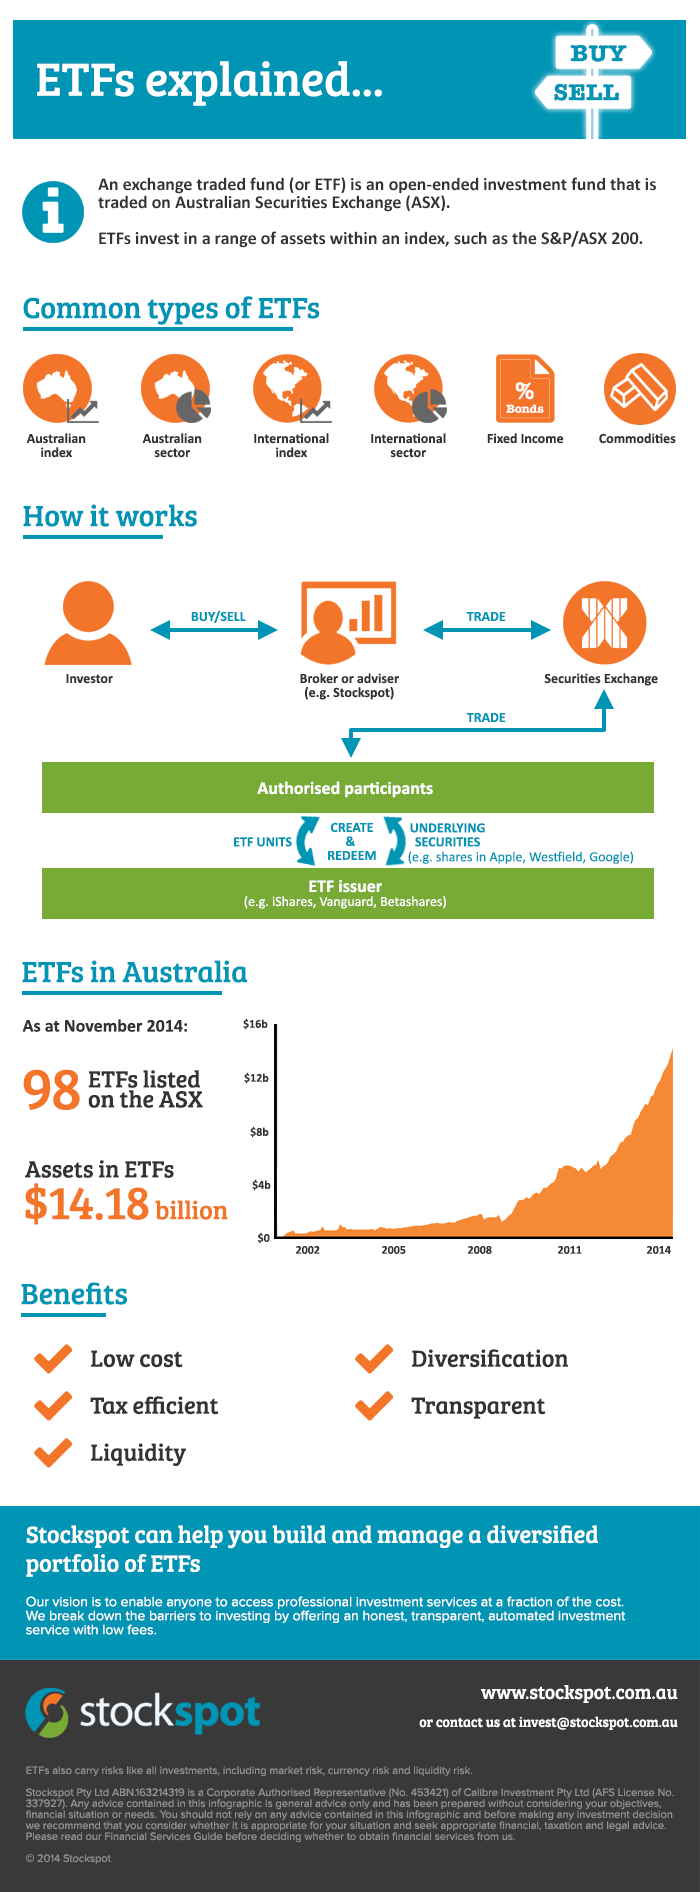 What are the benefits of etfs